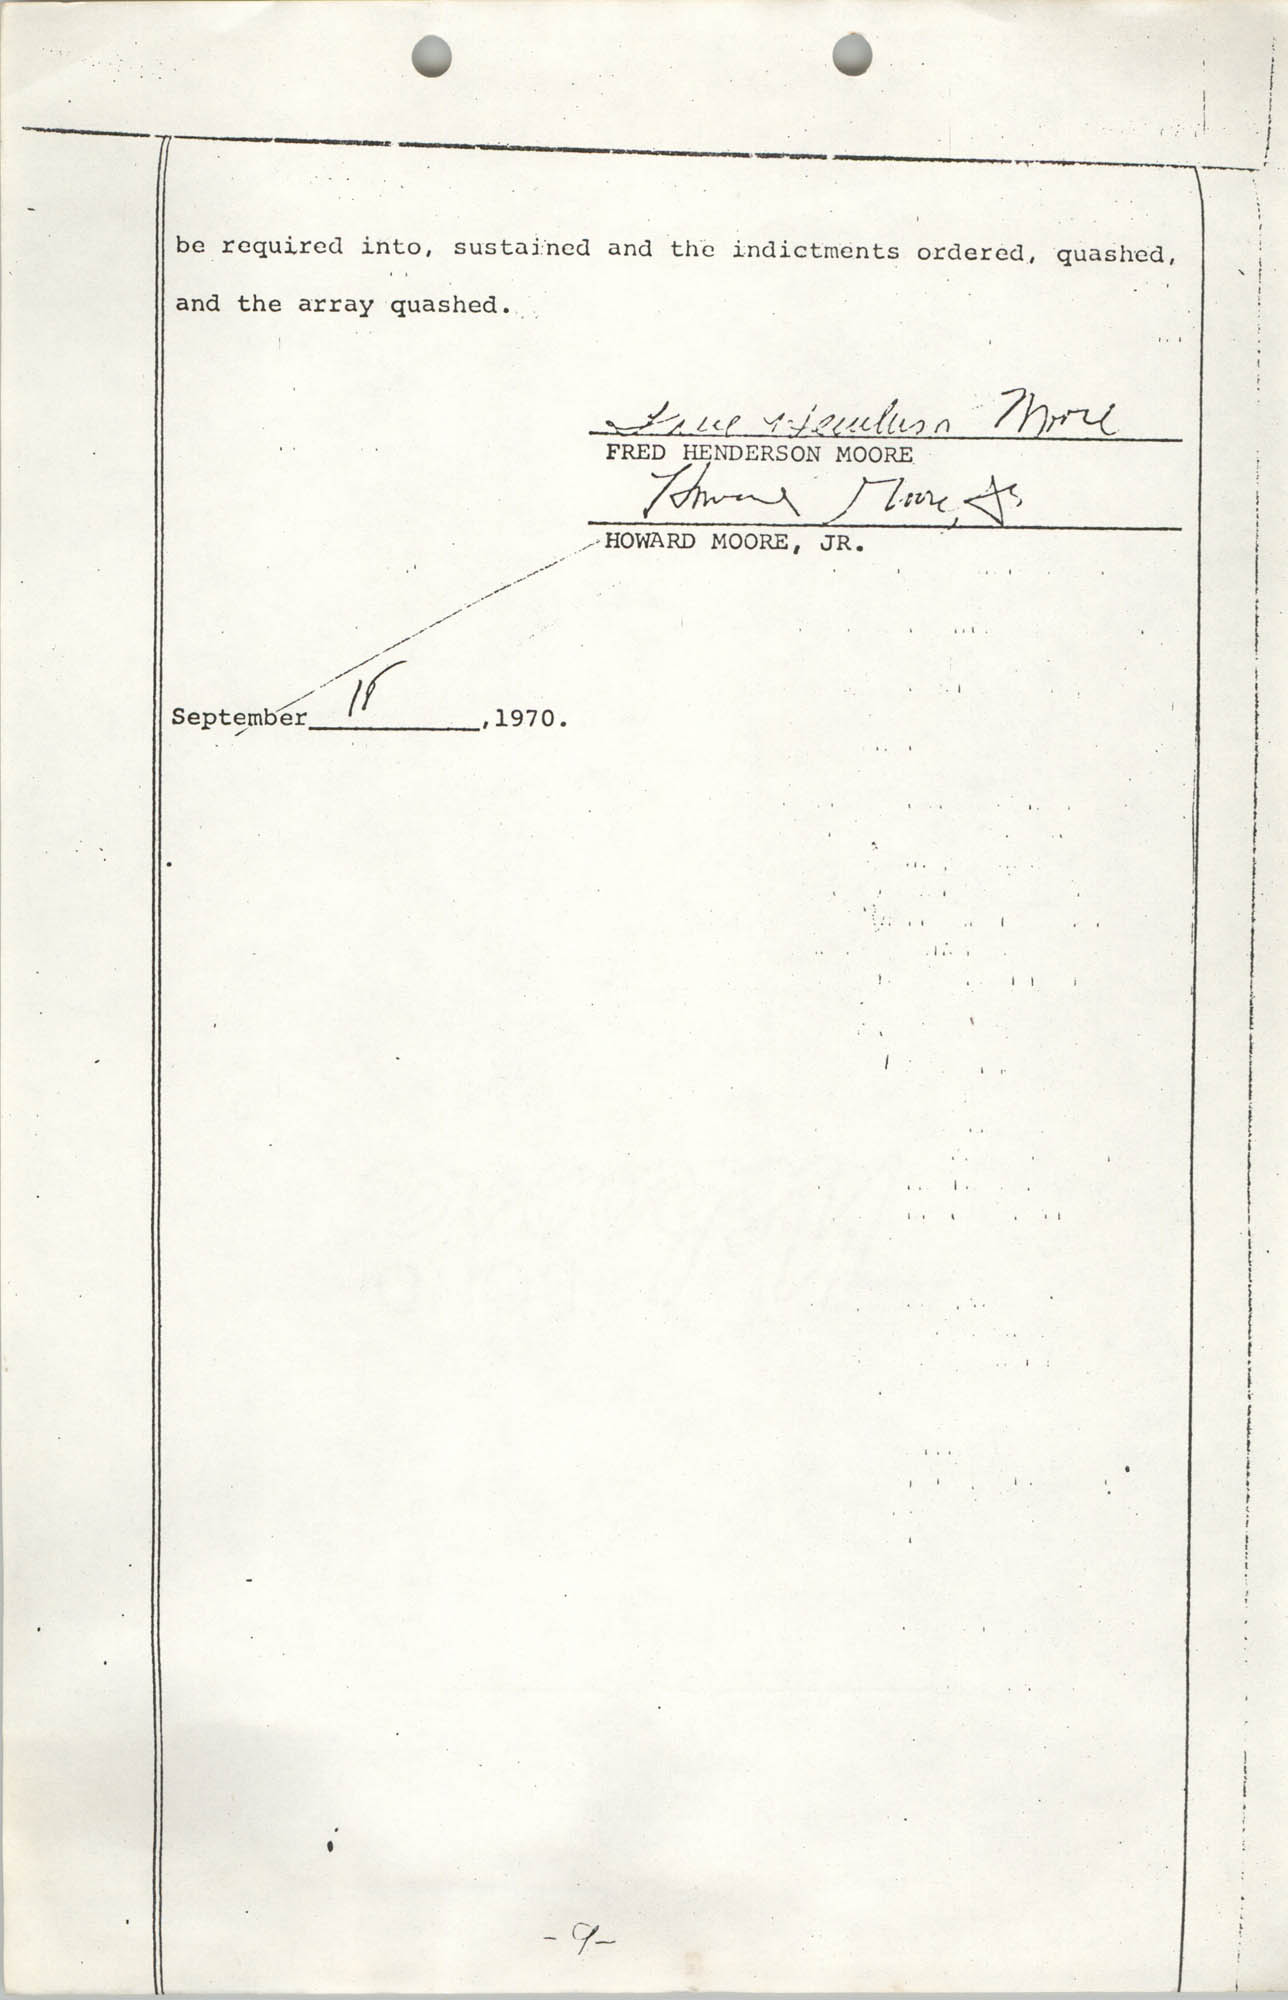 Appeal from Orangeburg County, The State against Cleveland Louis Sellers, Jr., Volume I, Page 9